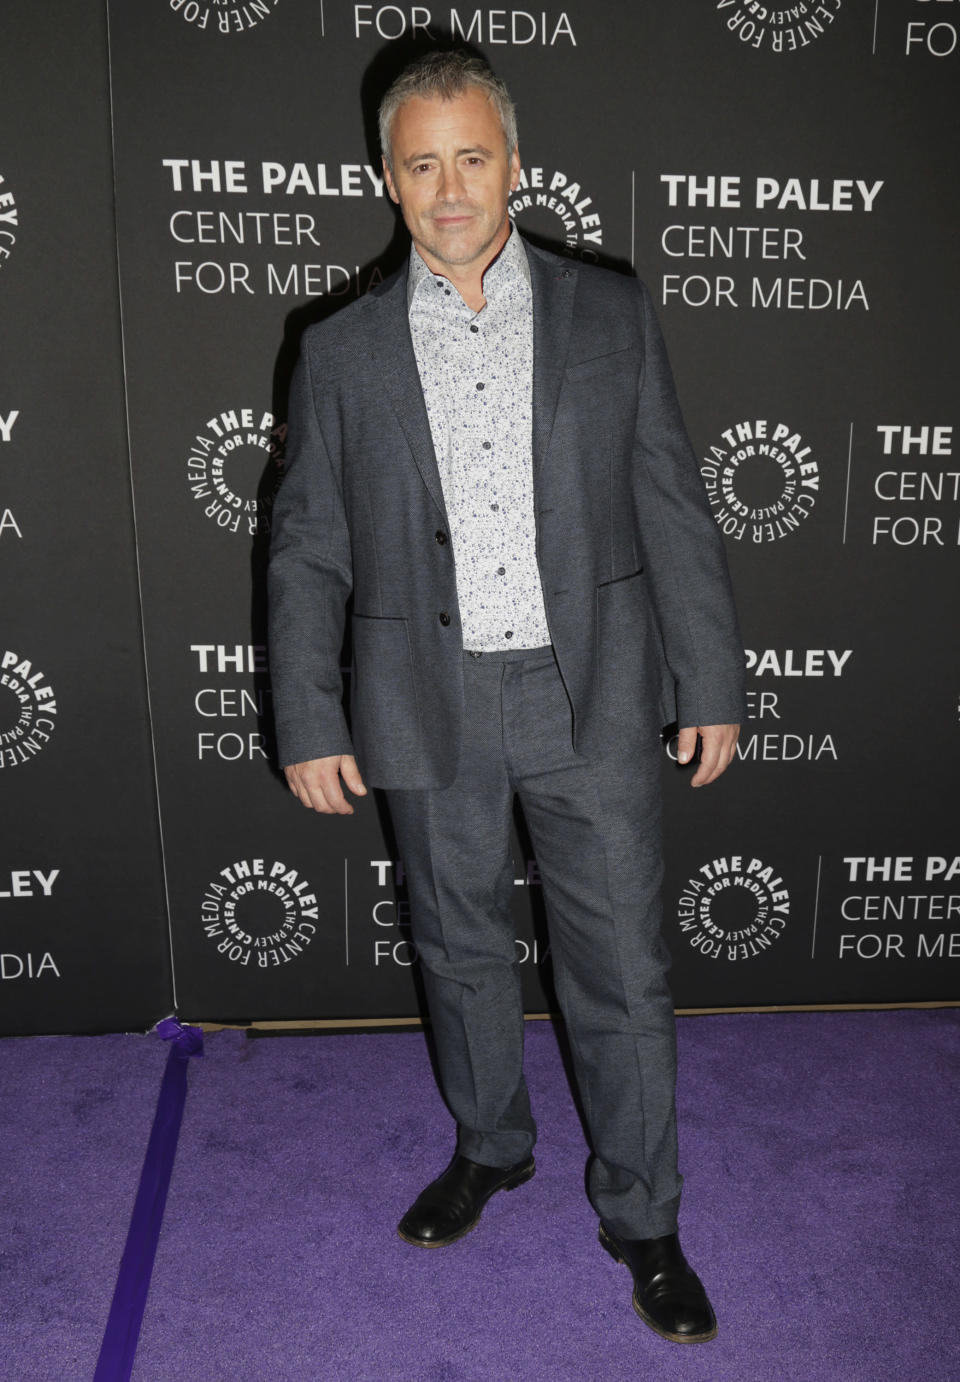 """FILE - Matt LeBlanc arrives at a premiere for the final season of """"Episodes"""" on Aug. 16, 2017, in Beverly Hills, Calif. LeBlanc turns 54 on July 25. (Photo by Alexander G. Seyum/Invision/AP, File)"""